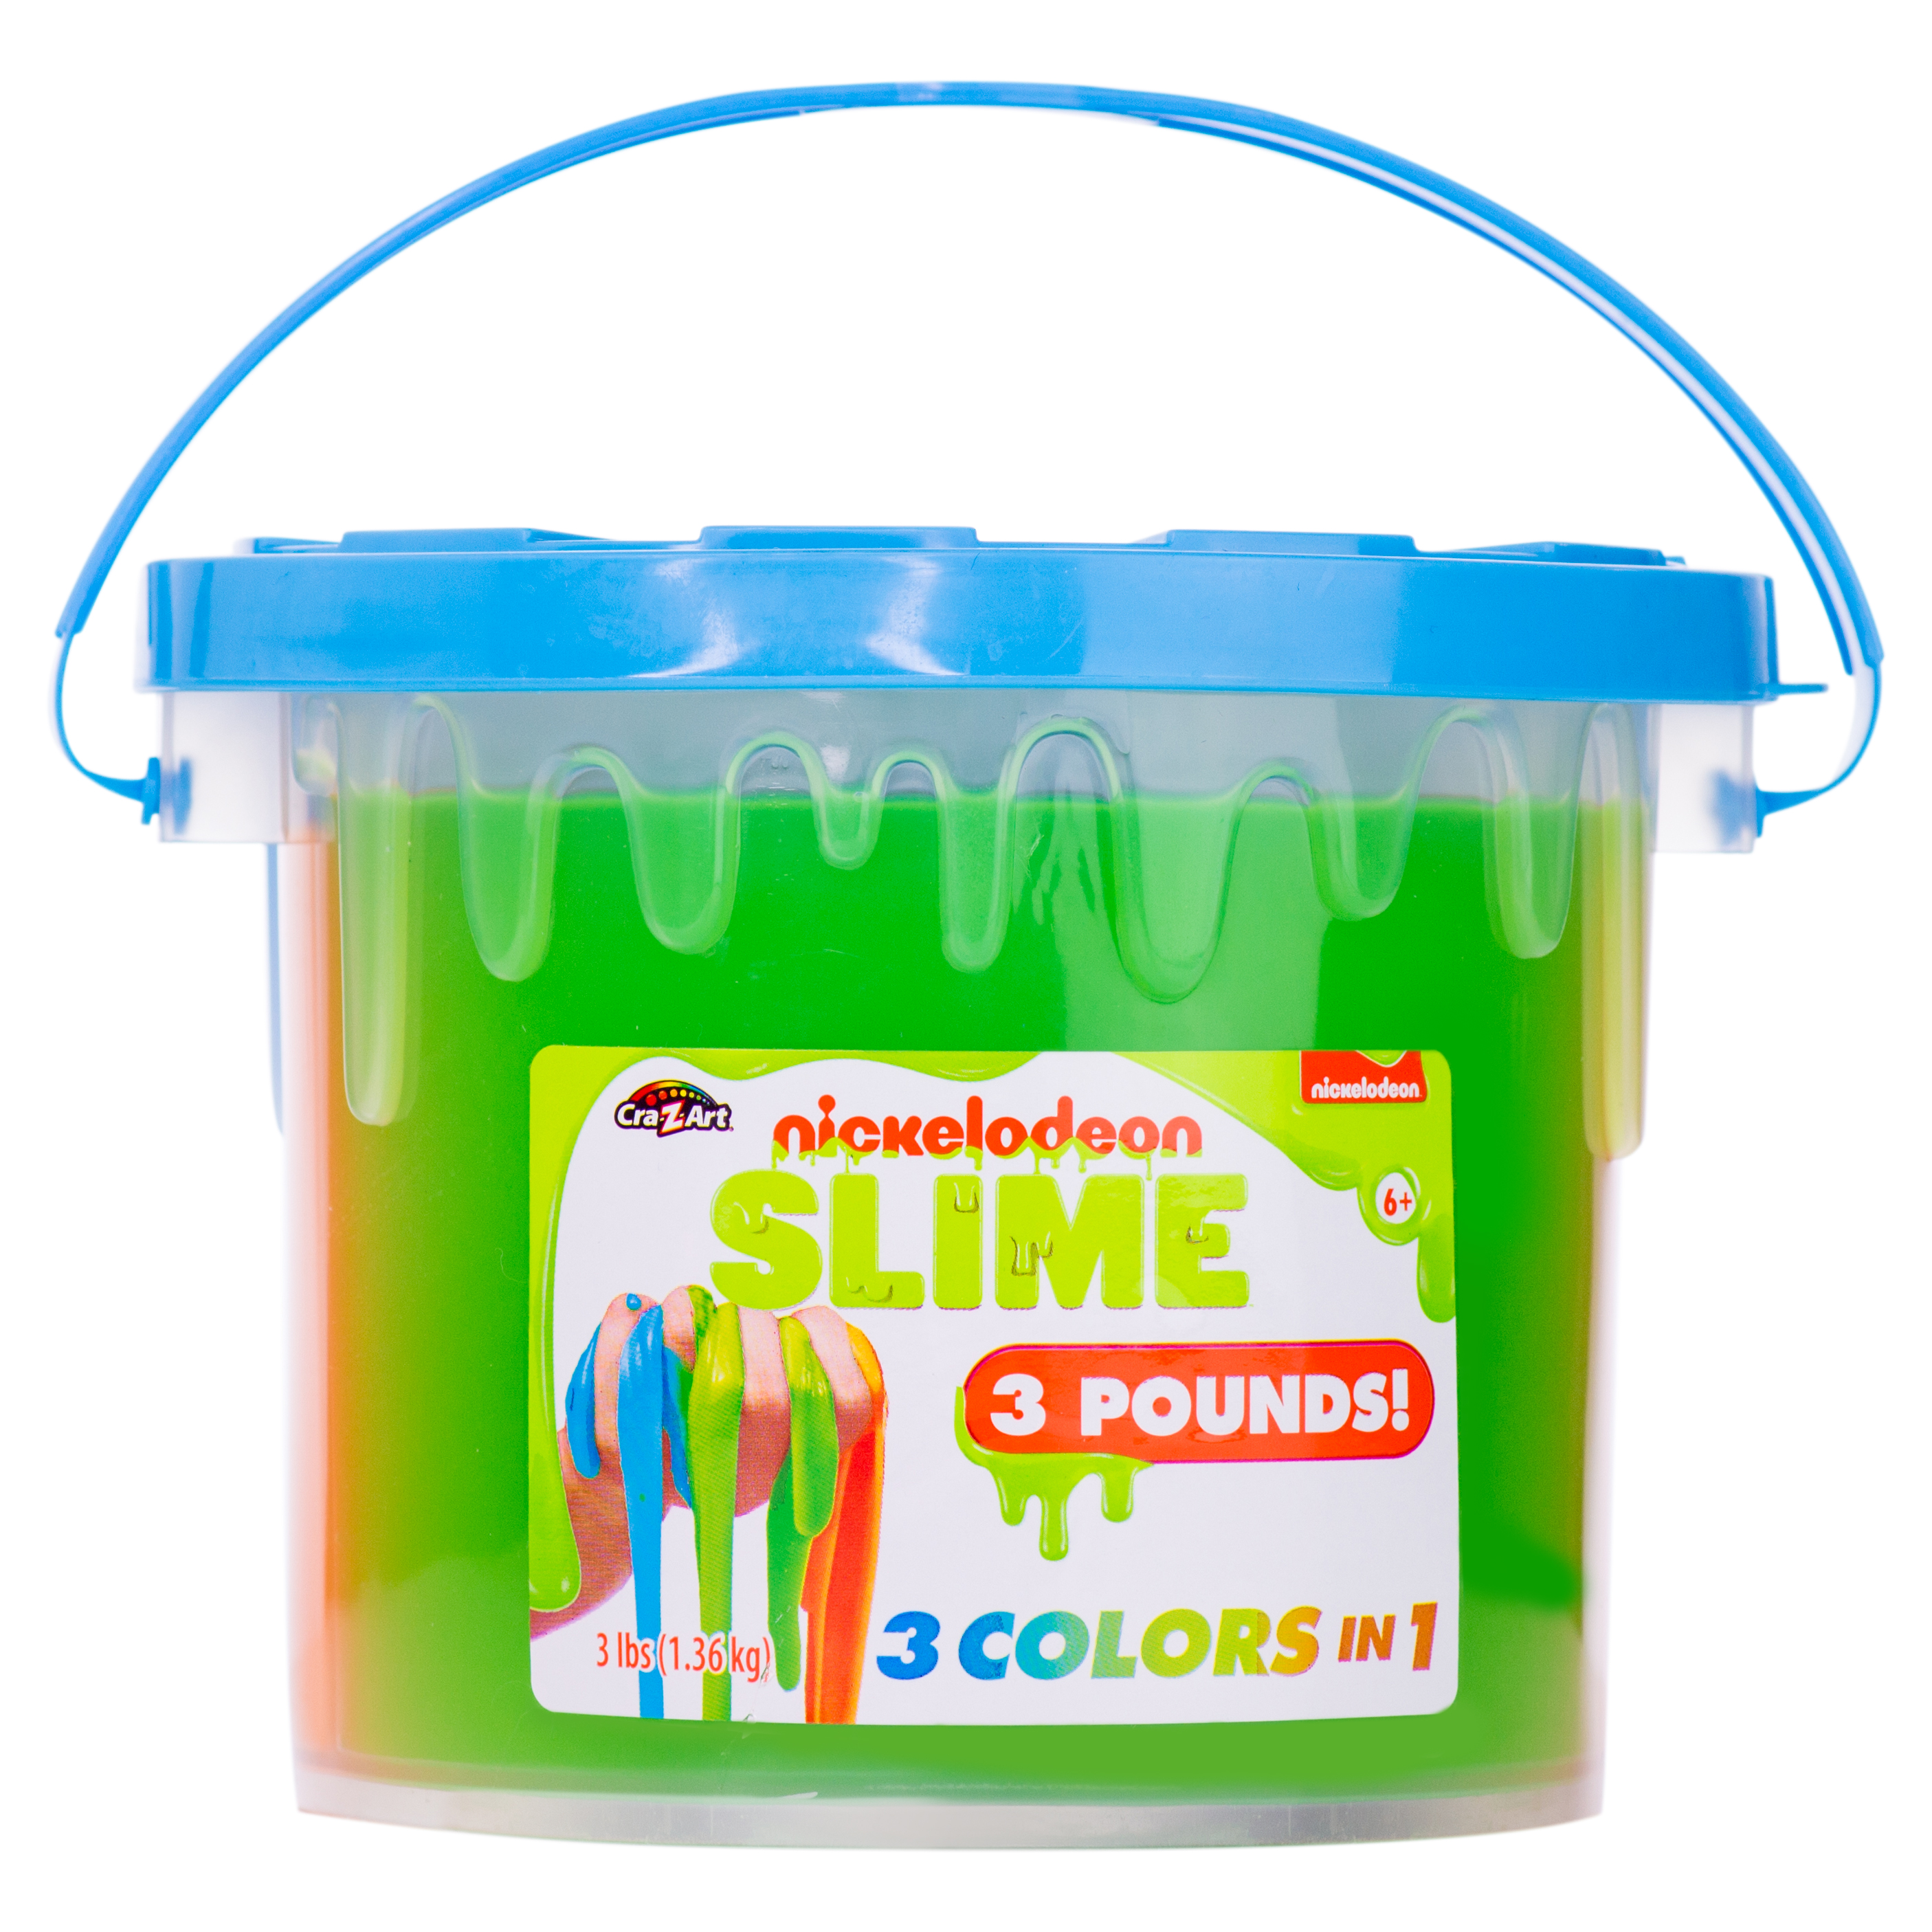 Nickelodeon Slime Bucket